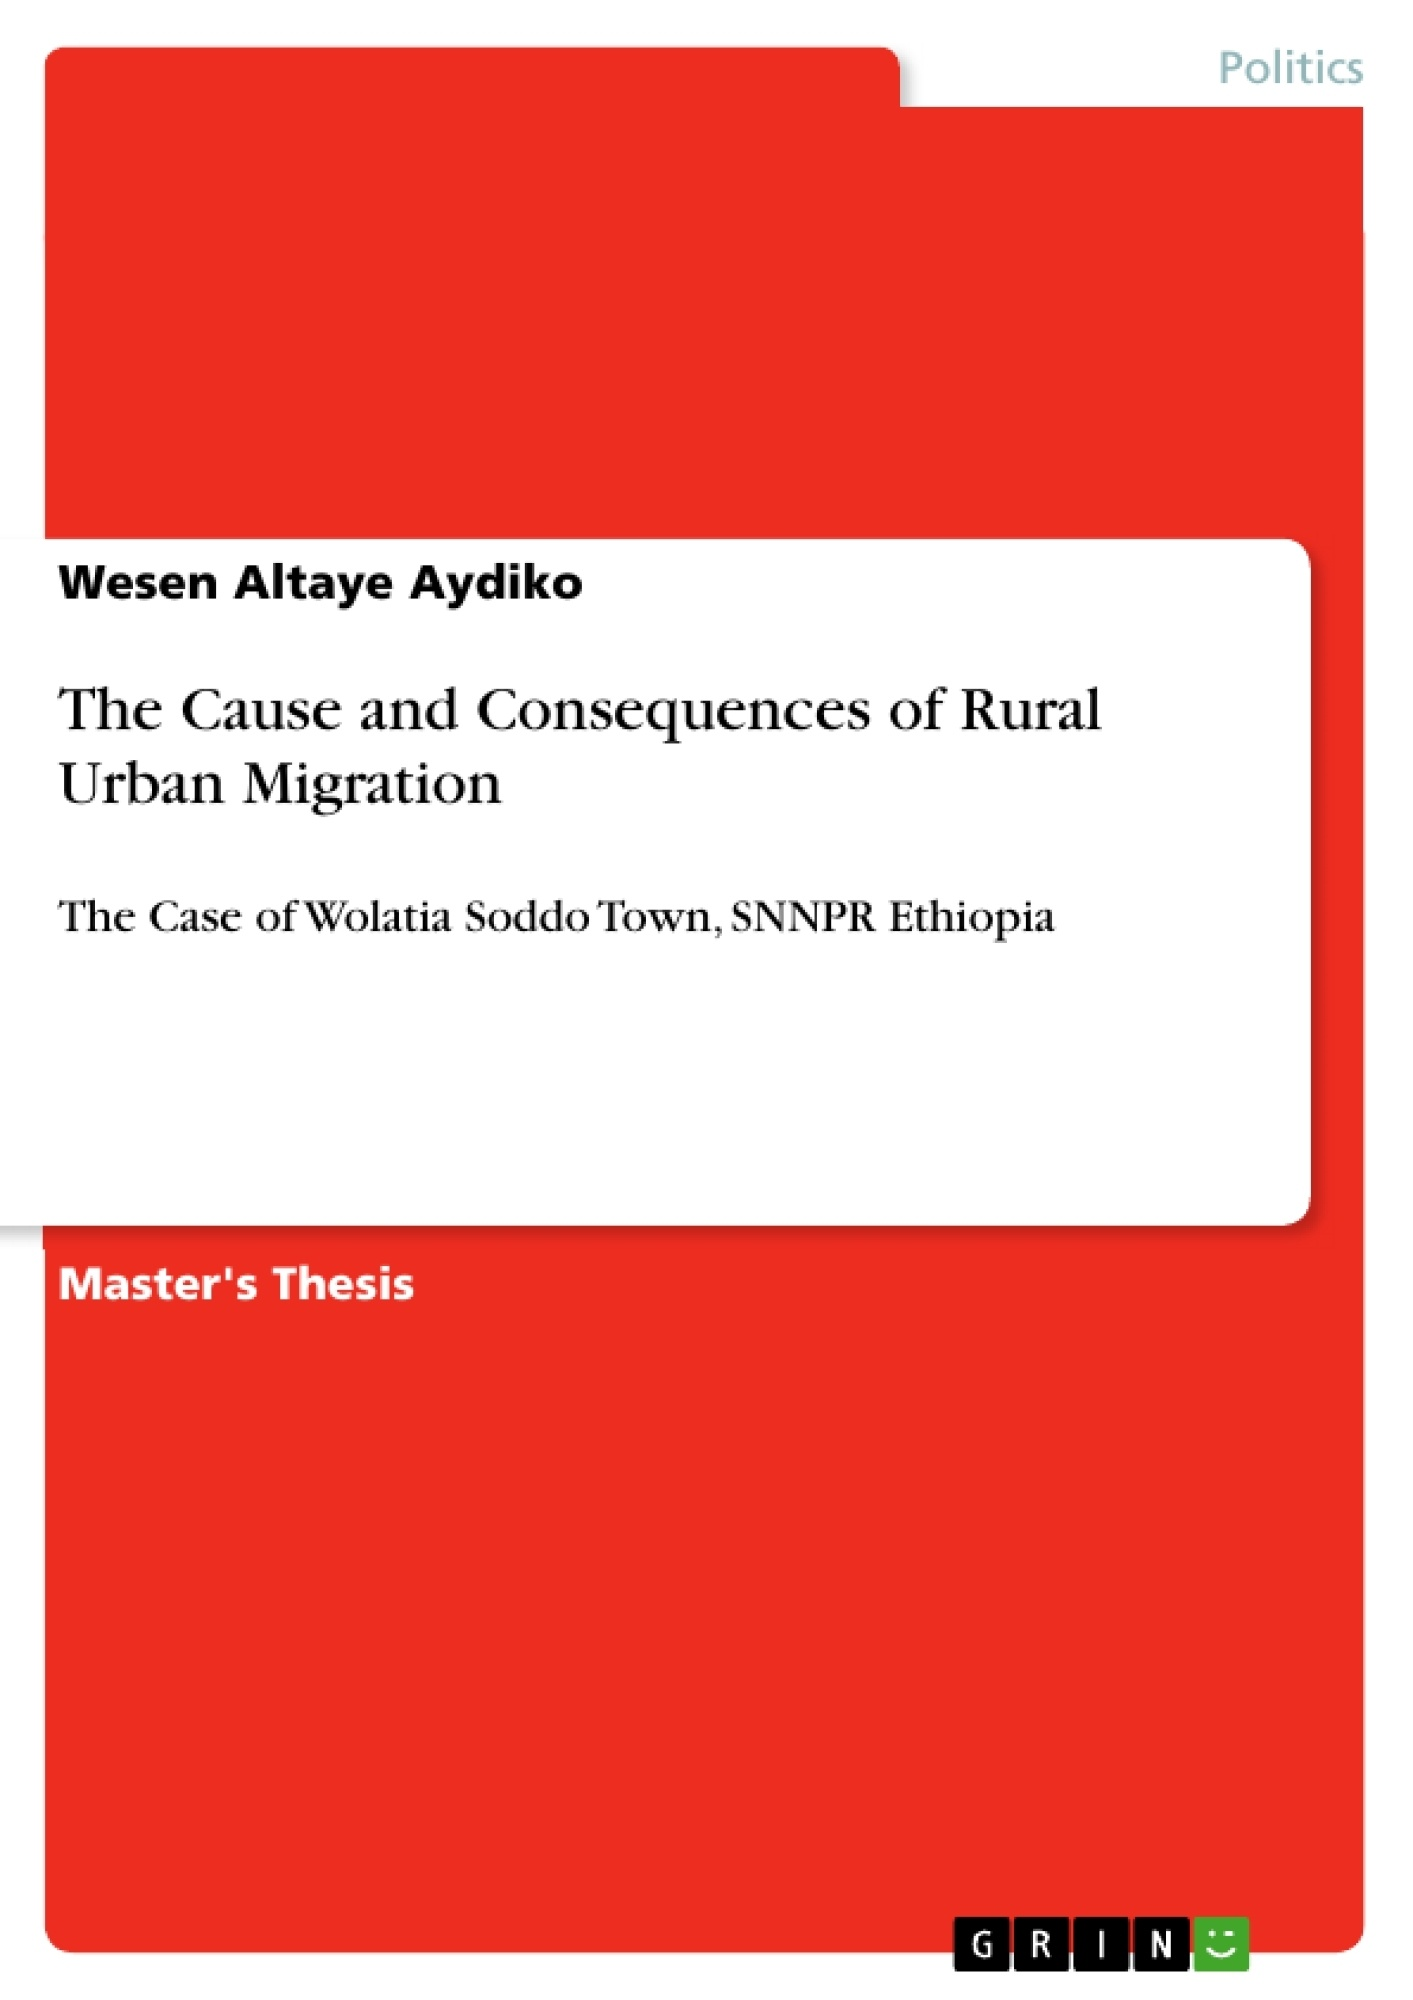 The cause and consequences of rural urban migration publish your the cause and consequences of rural urban migration publish your masters thesis bachelors thesis essay or term paper fandeluxe Gallery